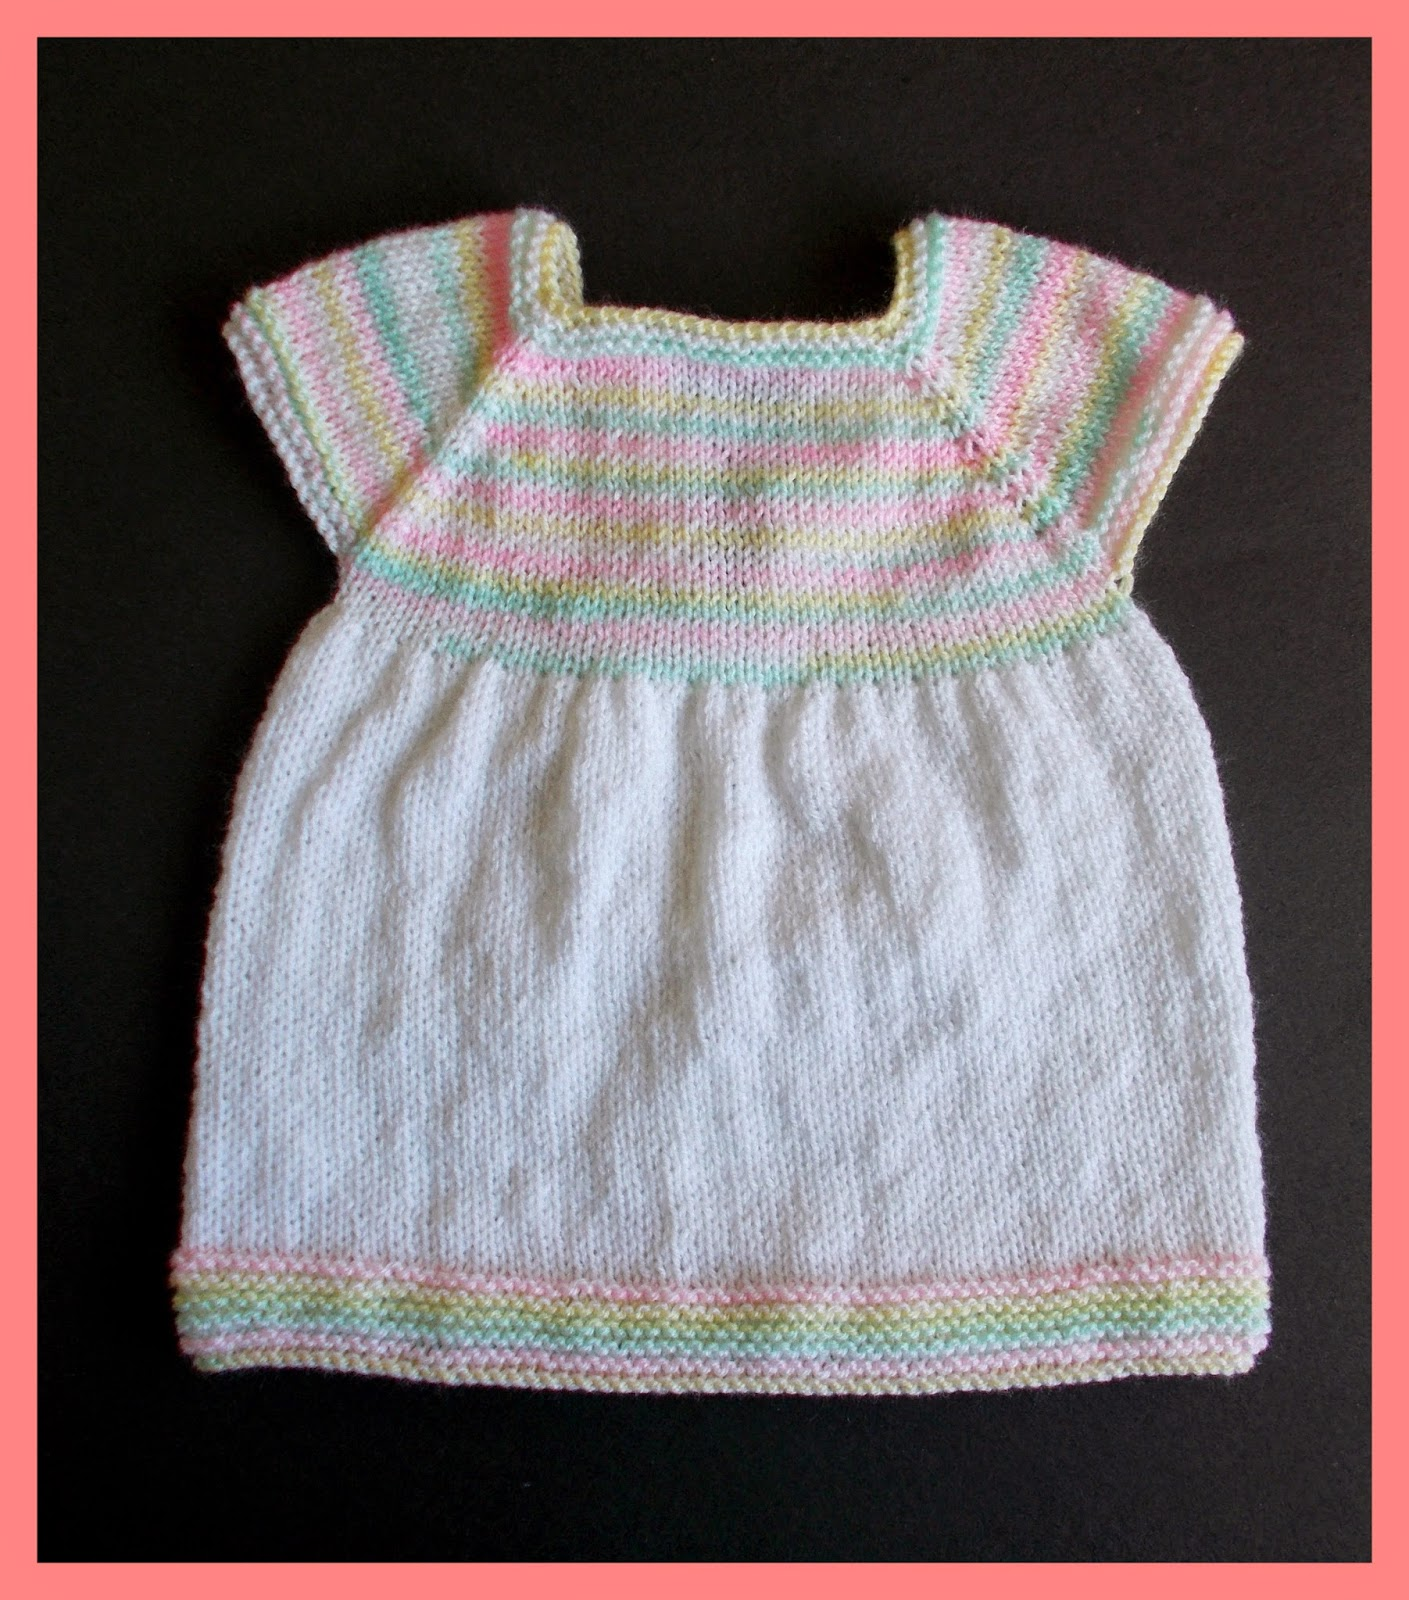 Knitting Instructions For Baby Dress : Marianna s lazy daisy days starting out knitted baby dress